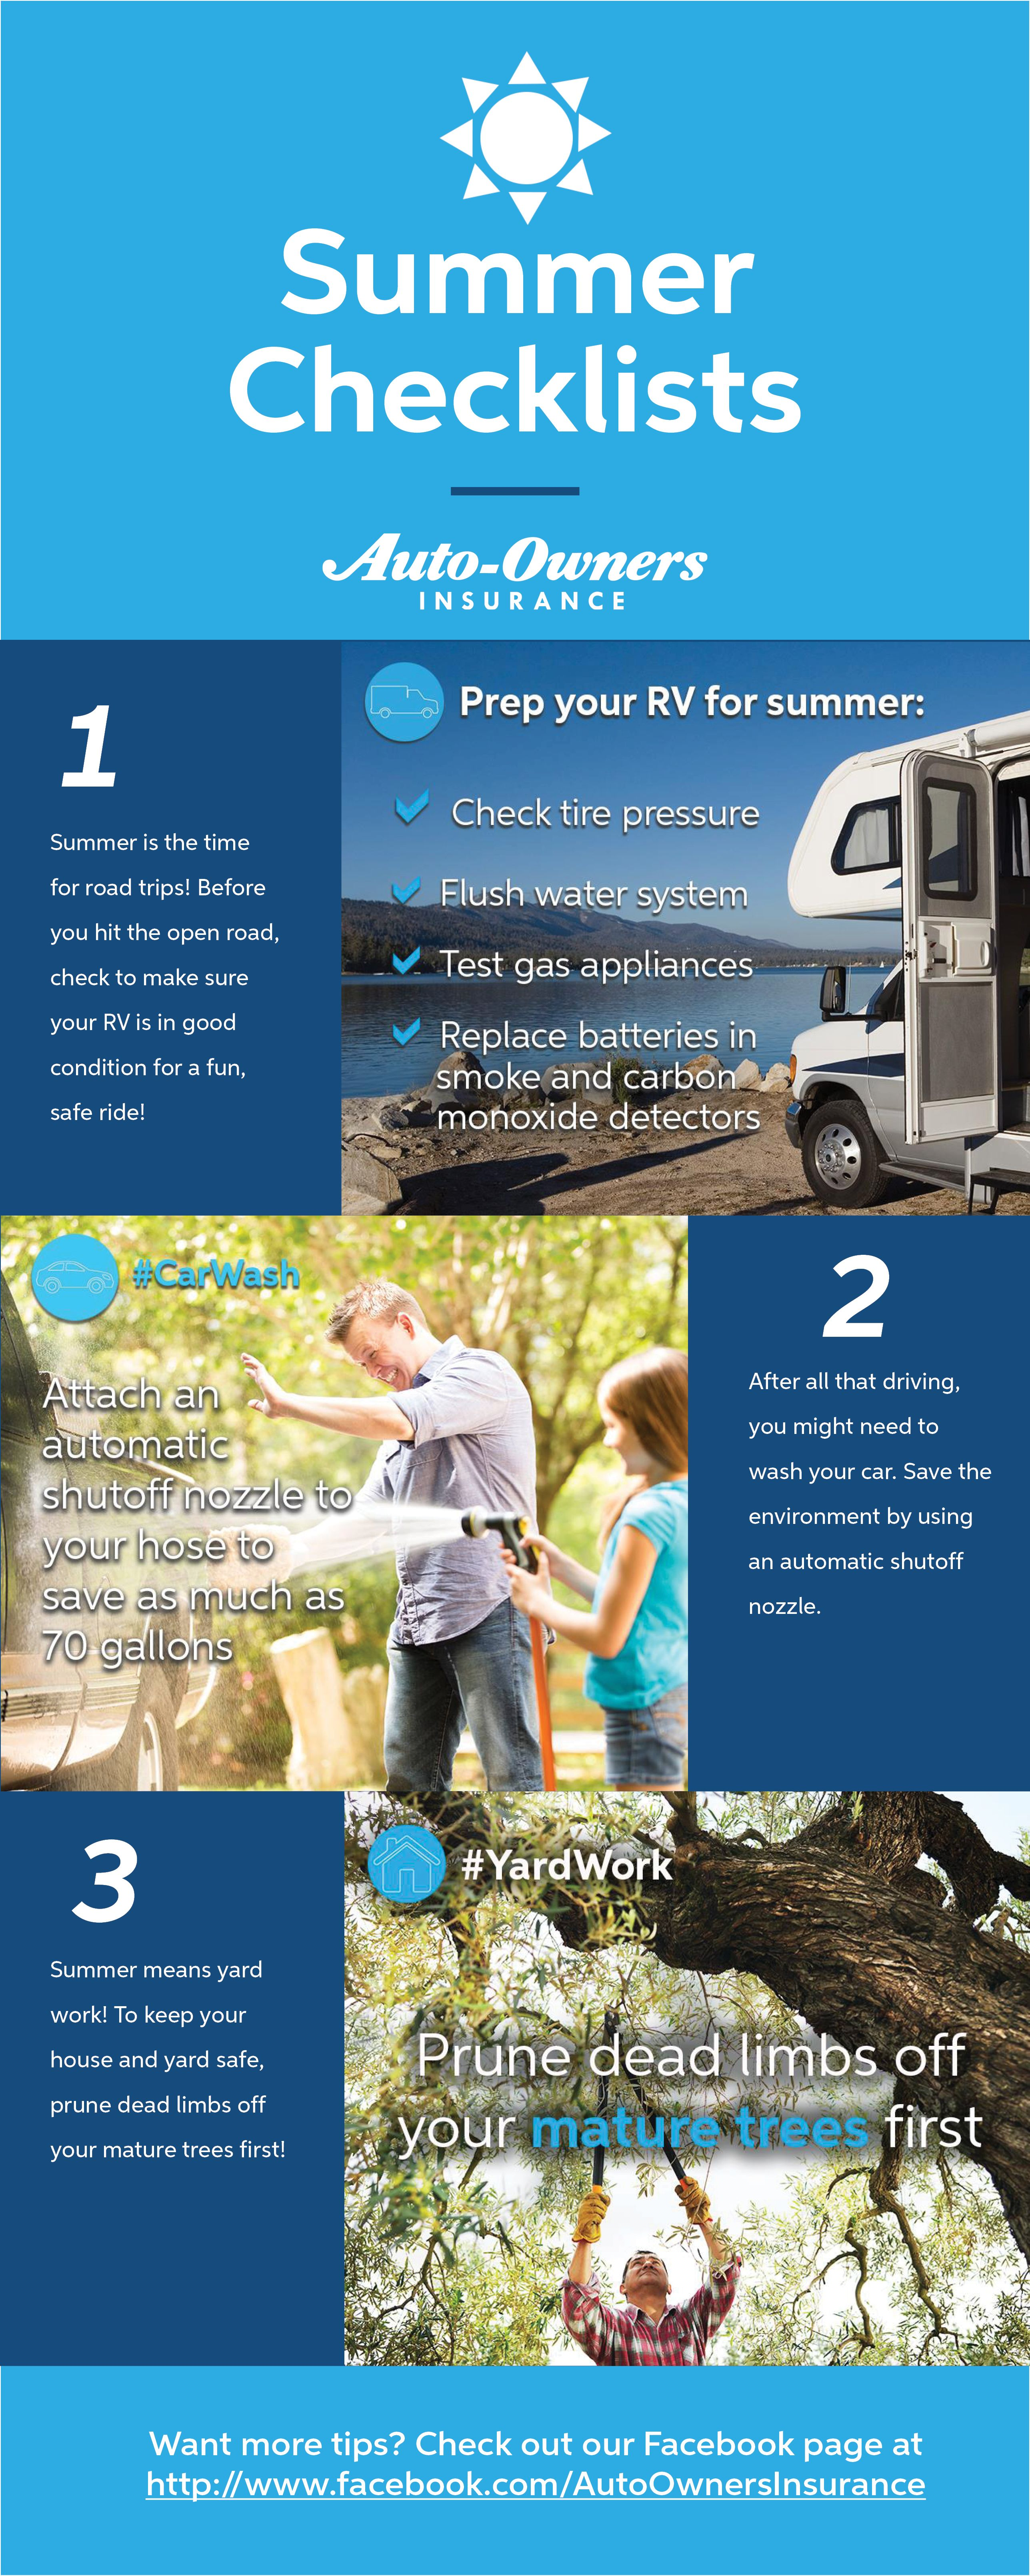 Summer is here! Here's some summer checklists and tips to